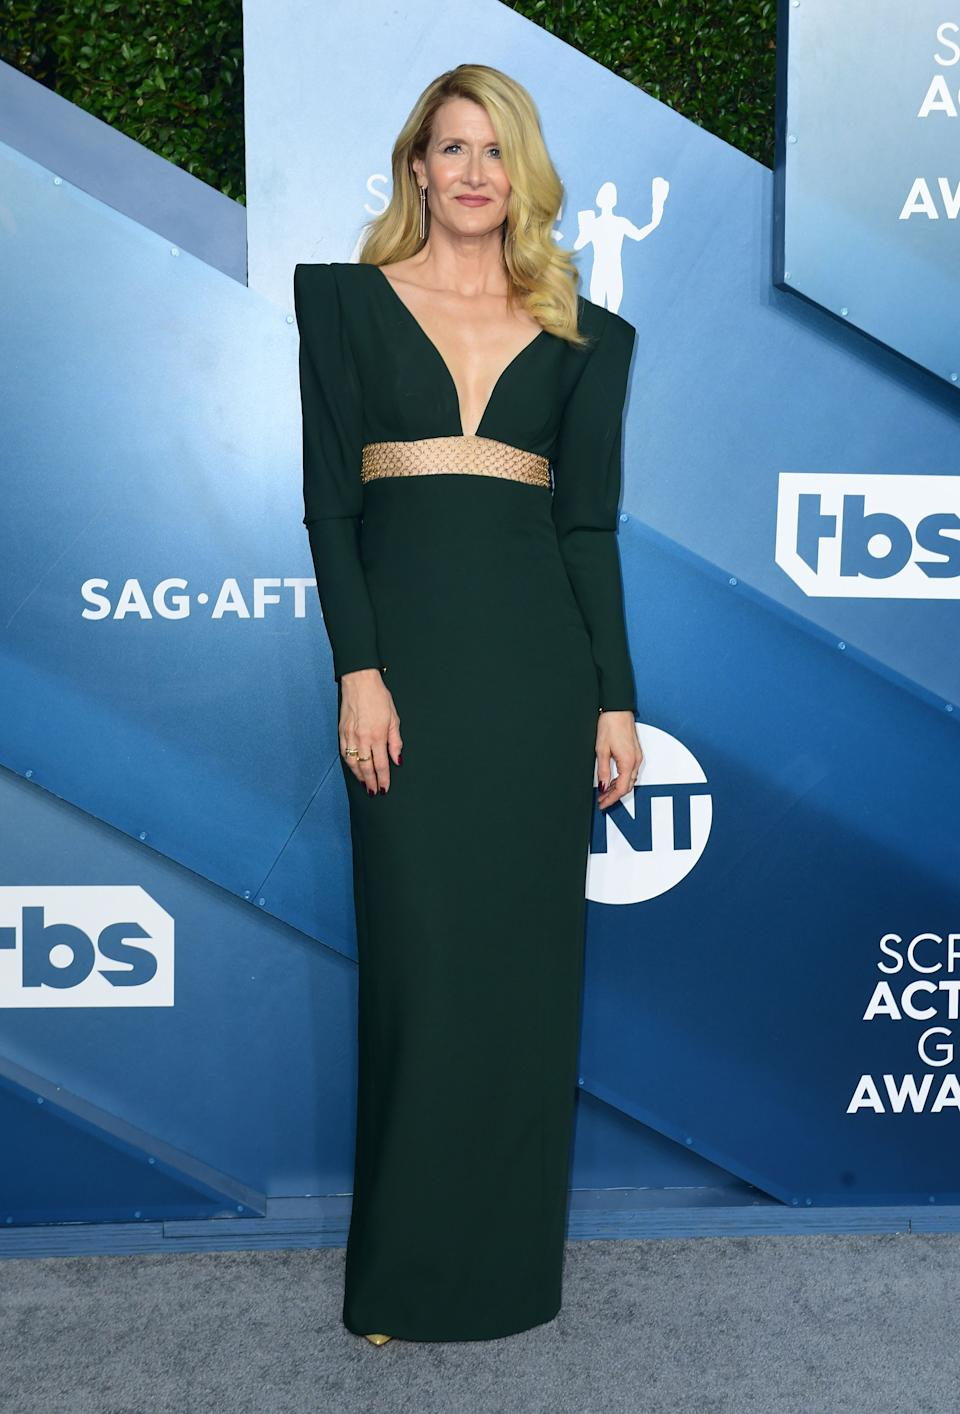 <h2>Laura Dern in Stella McCartney</h2><br>Laura Dern is looking more statuesque than ever in this bold-shouldered hunter green look.